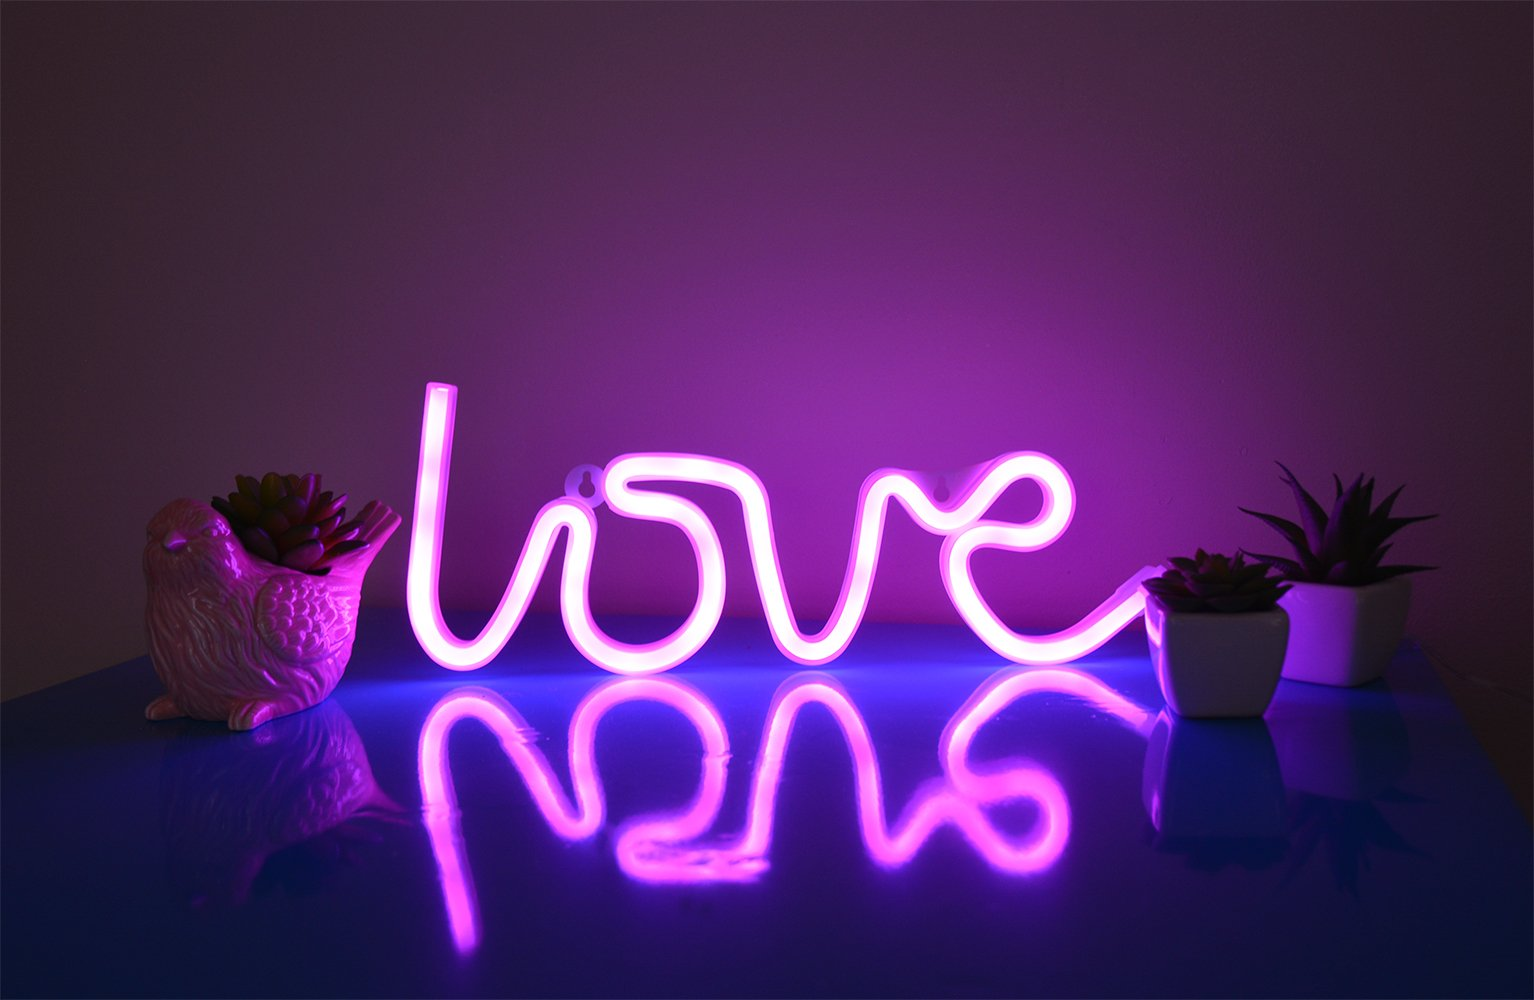 ''All you need is Love'' Neon Love Sign LED Light, Love Shaped, Decor Light, Wall Decor for Bedroom, Birthday Party, Living Room, Wedding Party Decoration, Battery Operated - Pink Neon